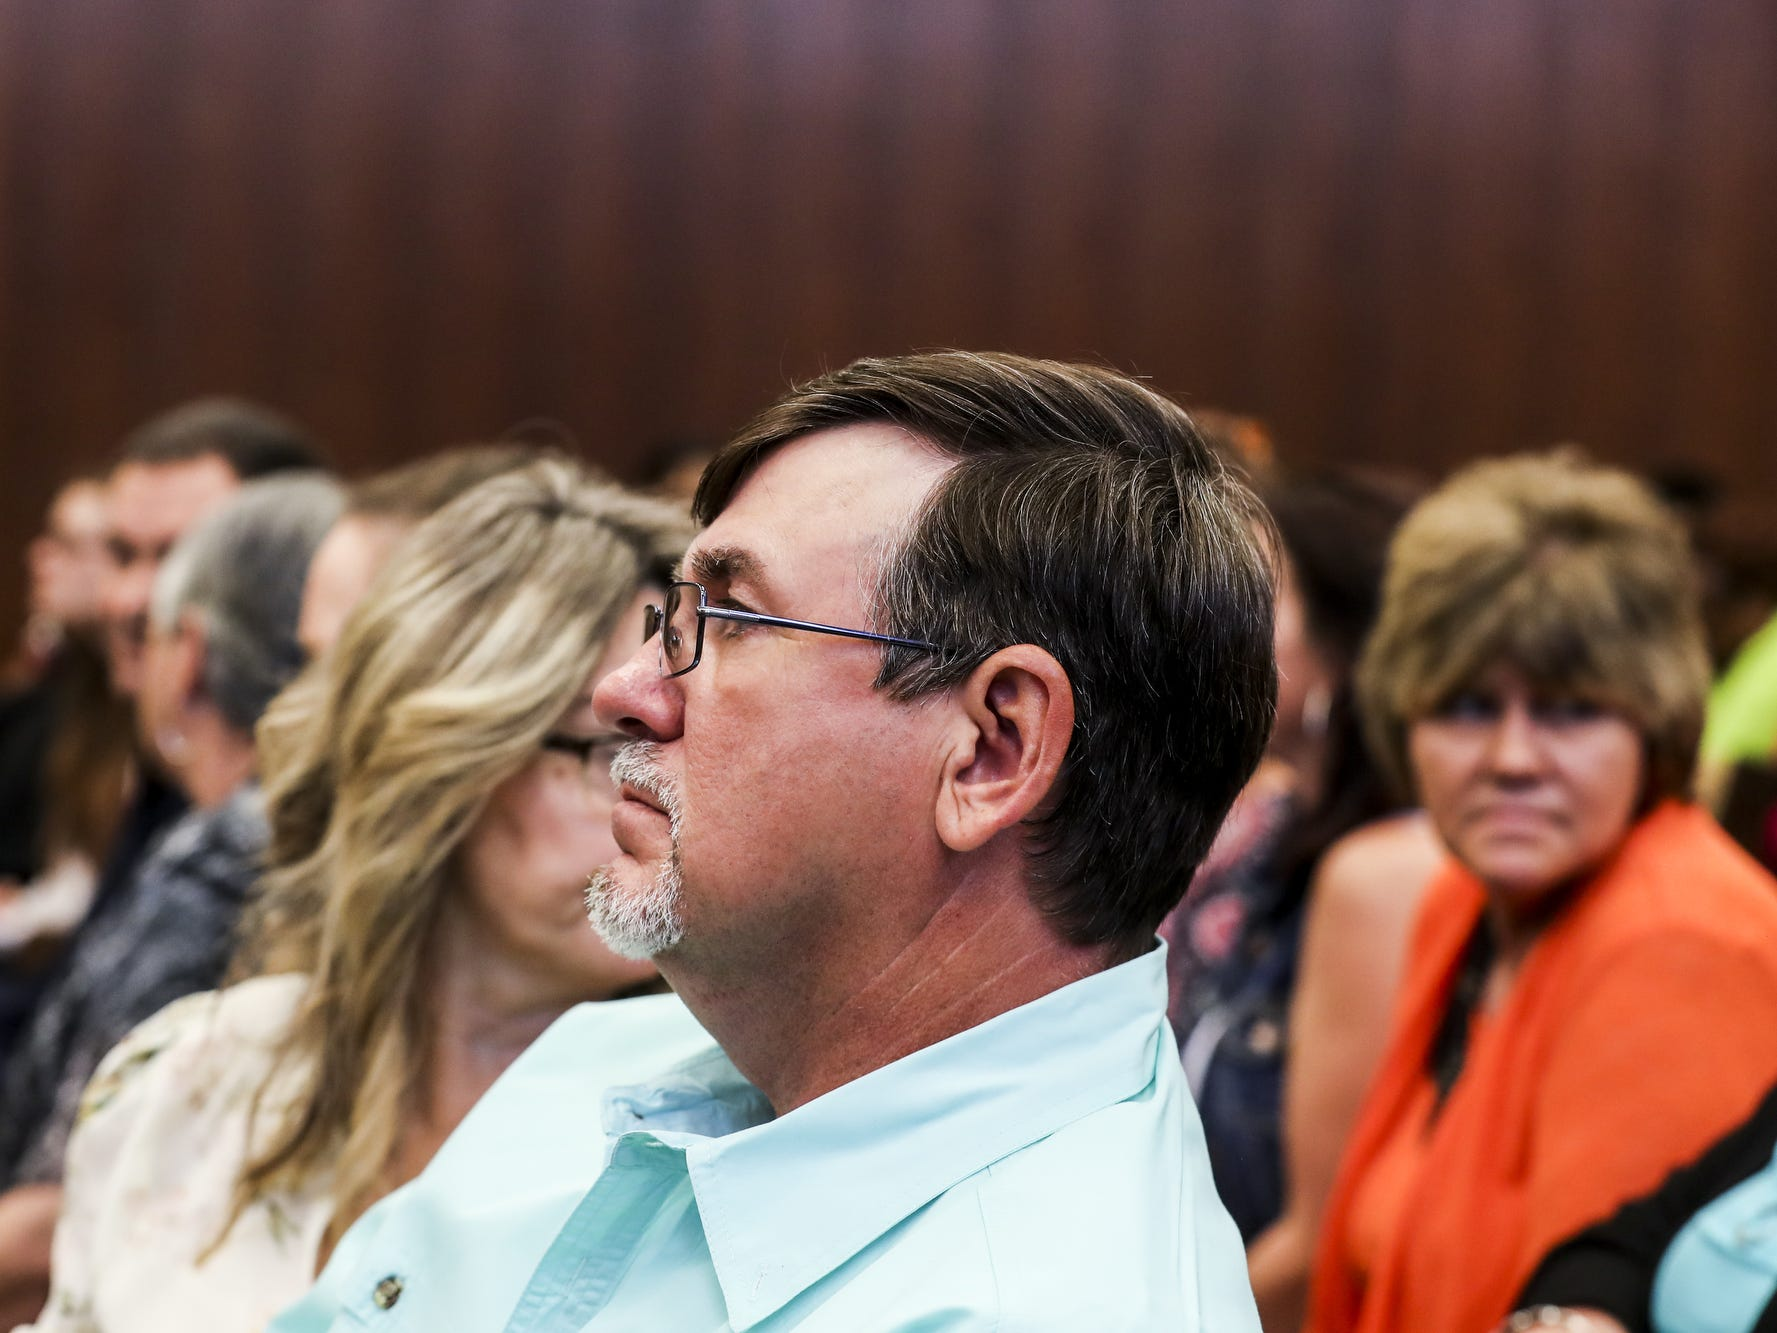 September 25 2018 - Ben Chambers, father of Jessica Chambers, is seen in the courtroom on the first day of the retrial of Quinton Tellis in Batesville, Mississippi on Tuesday. Tellis is charged with burning 19-year-old Jessica Chambers to death almost three years ago on Dec. 6, 2014. Tellis has pleaded not guilty to the murder.